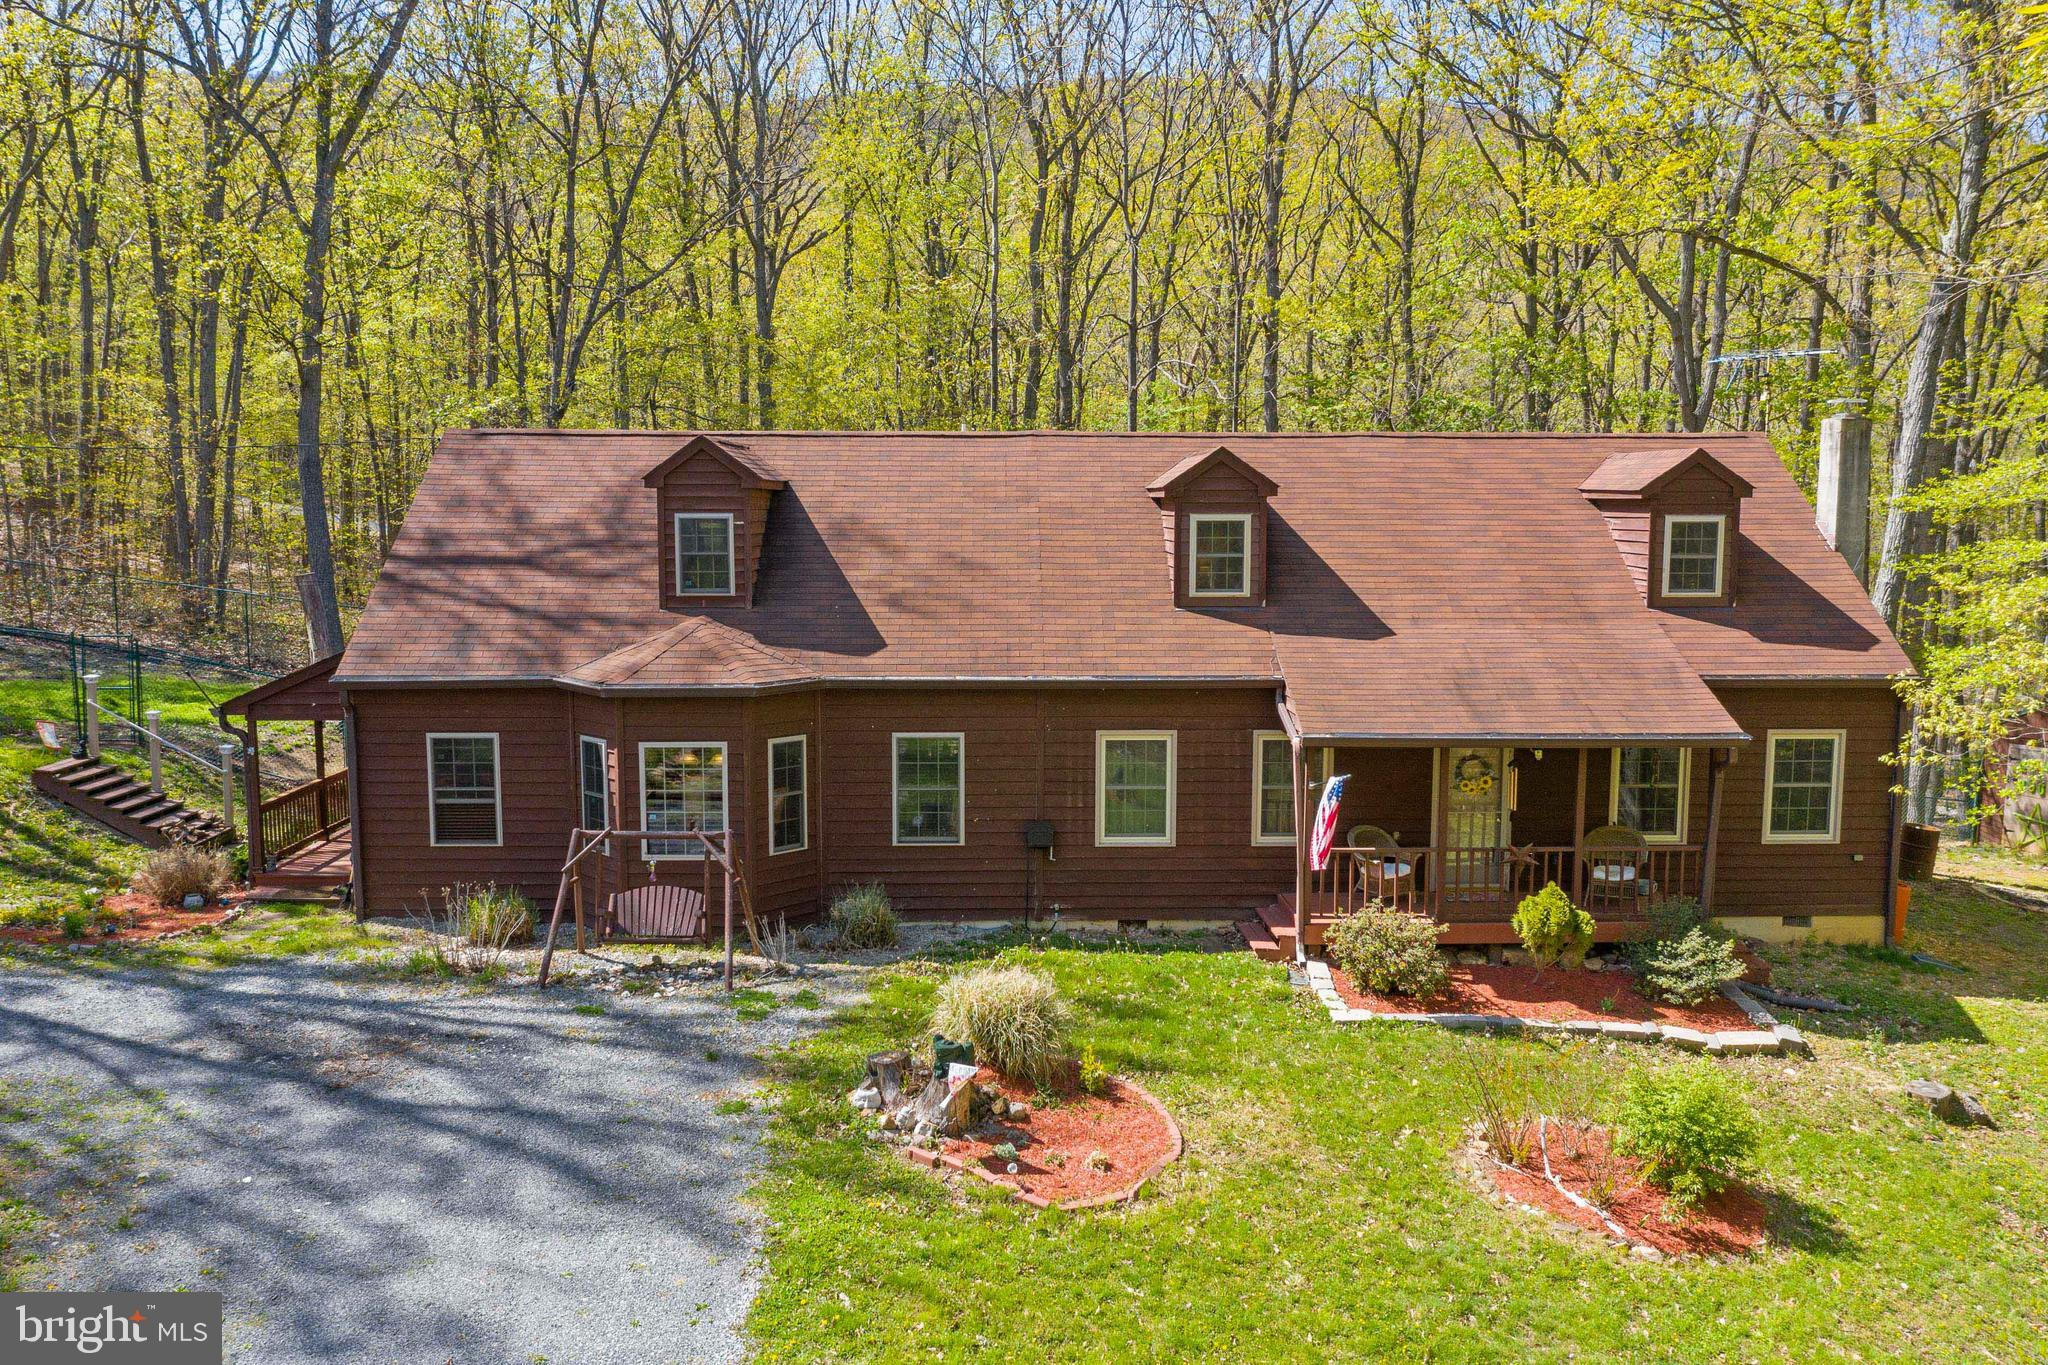 This key-ready Cape Cod is in excellent condition and is situated on a premium double lot, offering